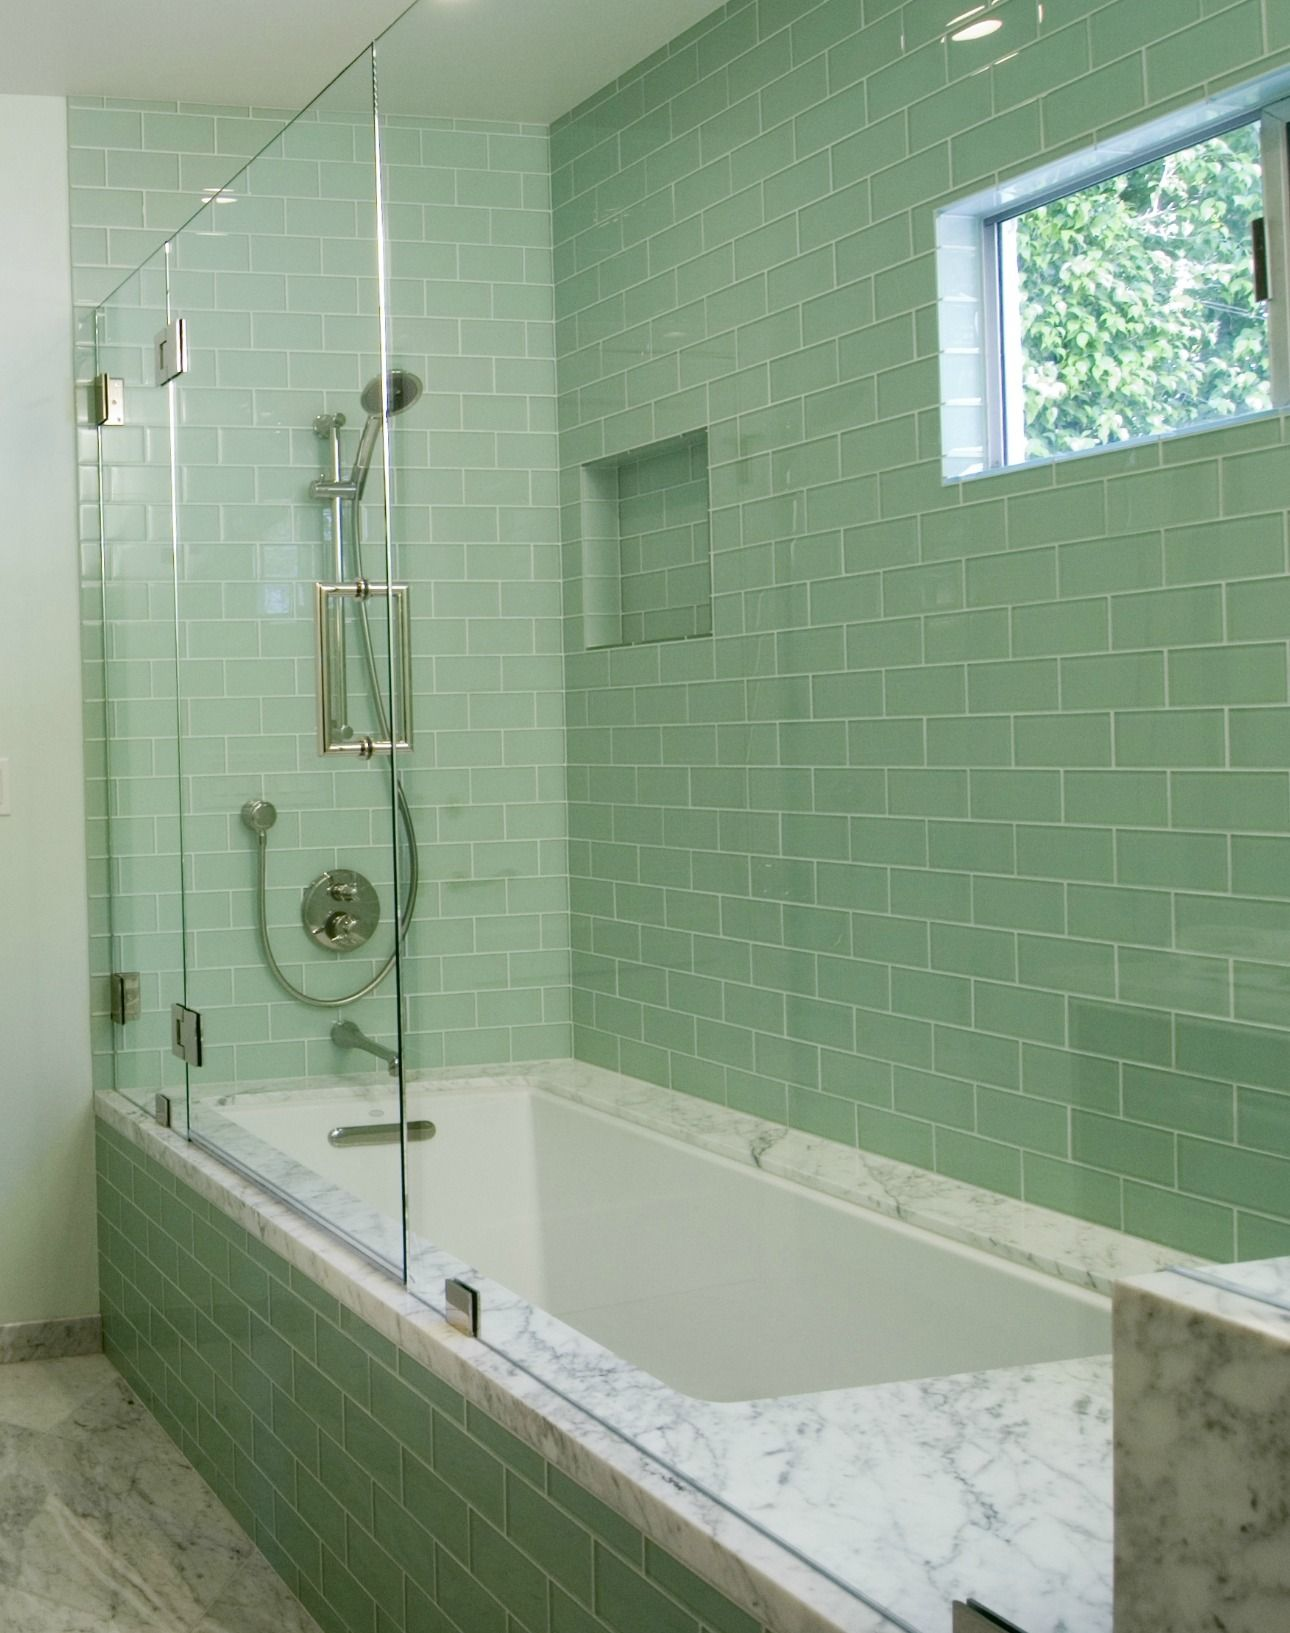 Terrific Glass Subway Tile For Your Bathroom And Kitchen Ideas: Appealing  Modern Green Glass Subway Tile For Bathroom Wall Panels Also Stainless Head  Shower ...